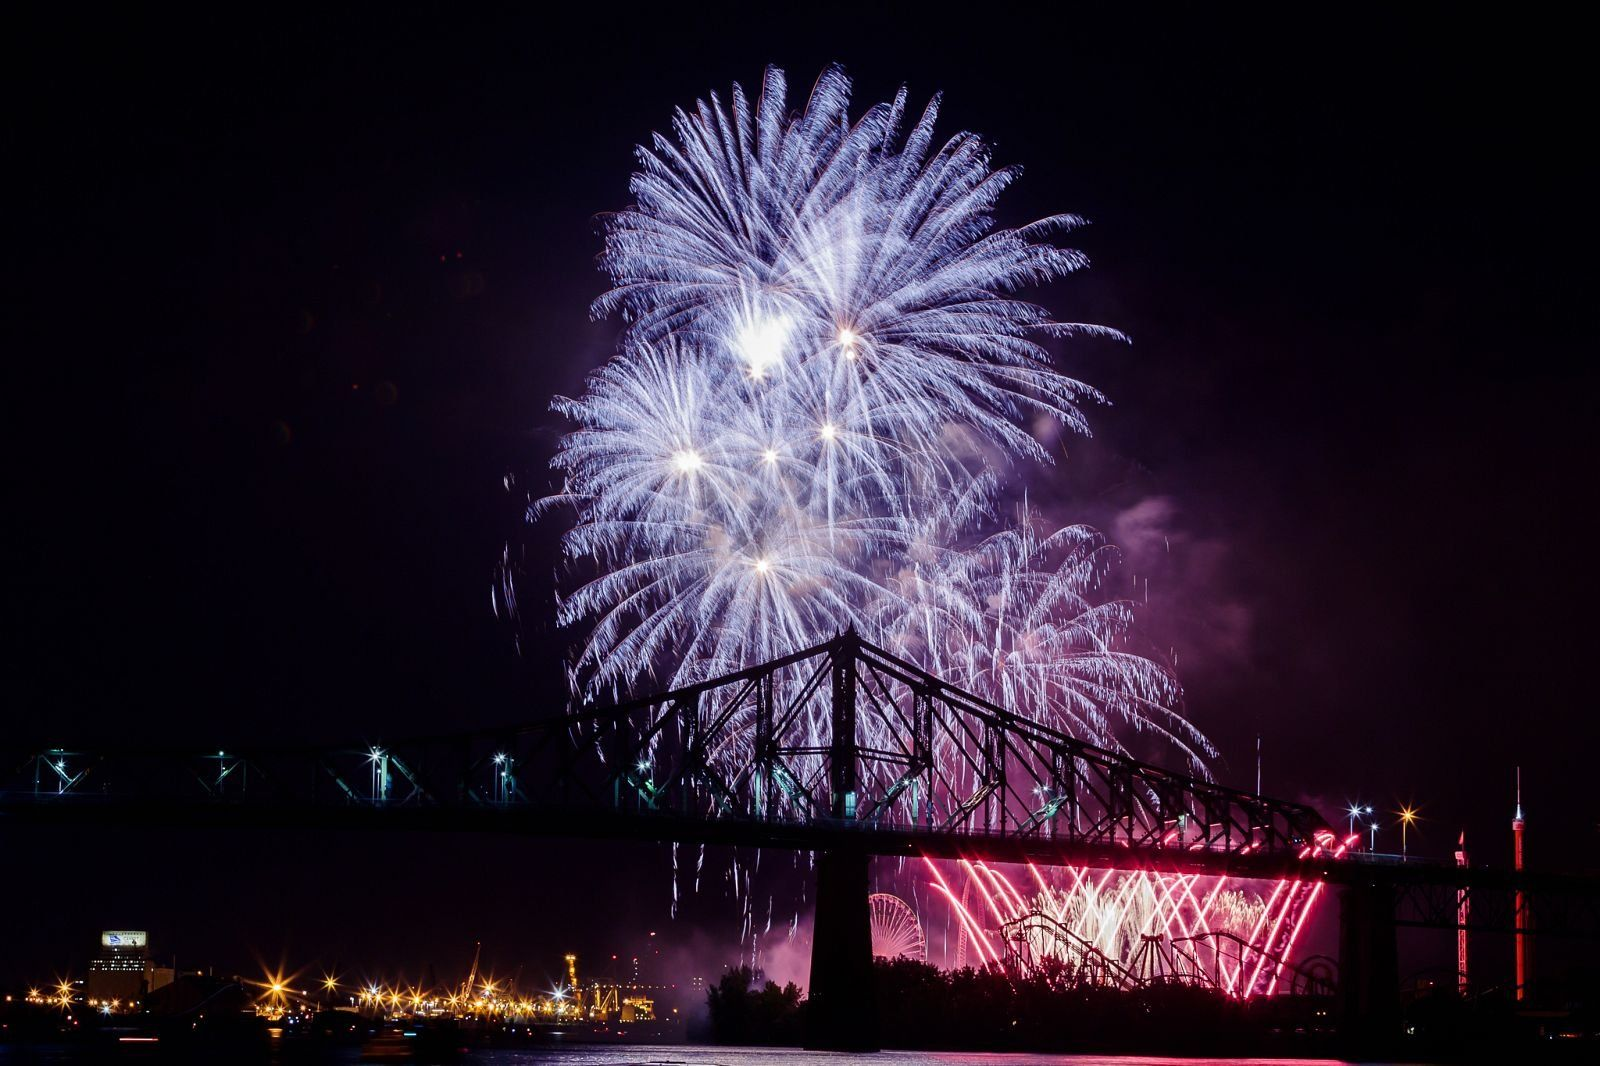 montreal_fireworks_competition_201724_1100.jpg